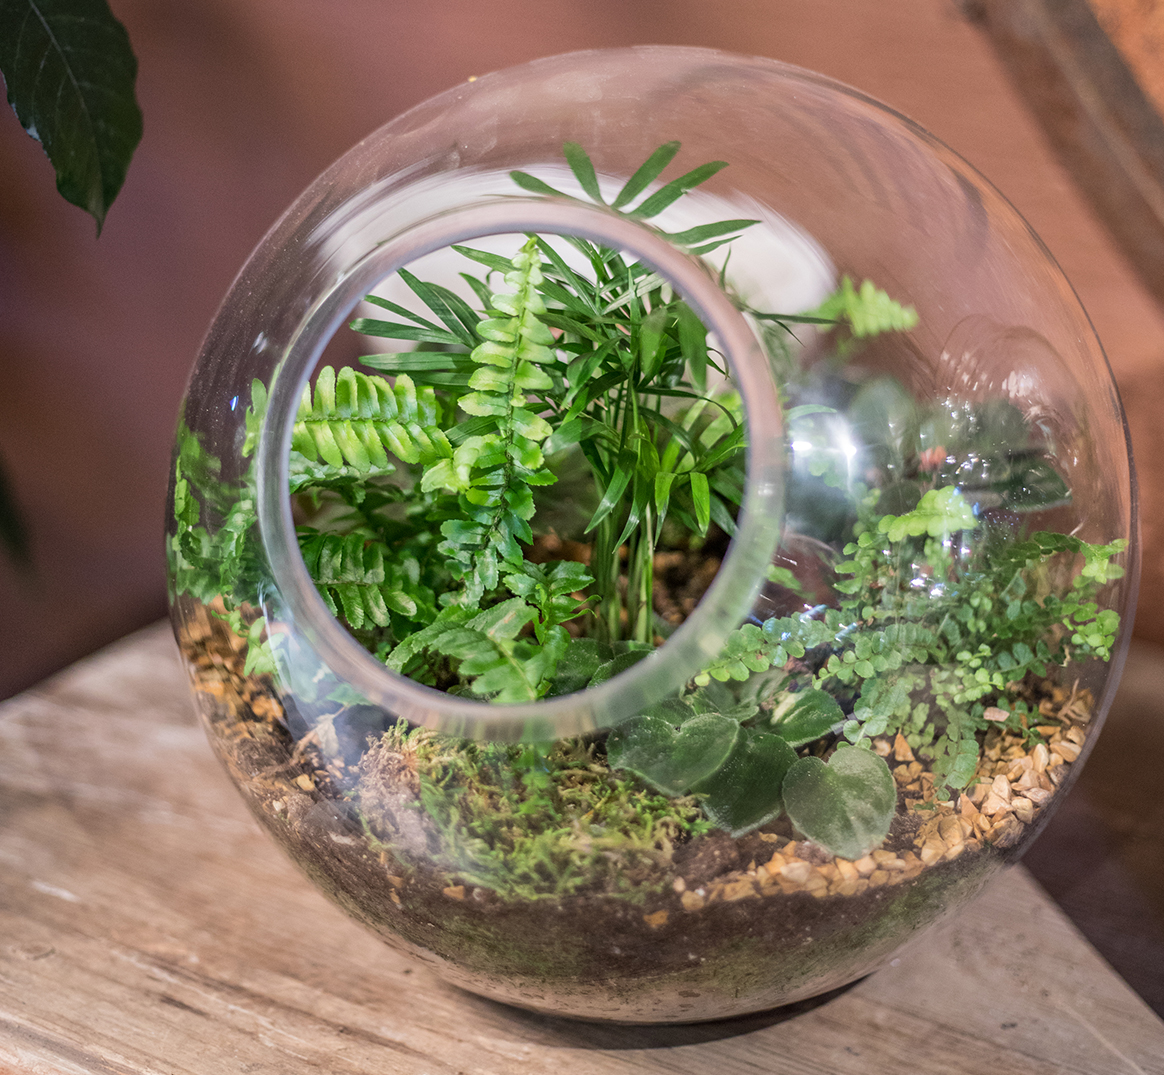 An image of a glass bowl terrariums